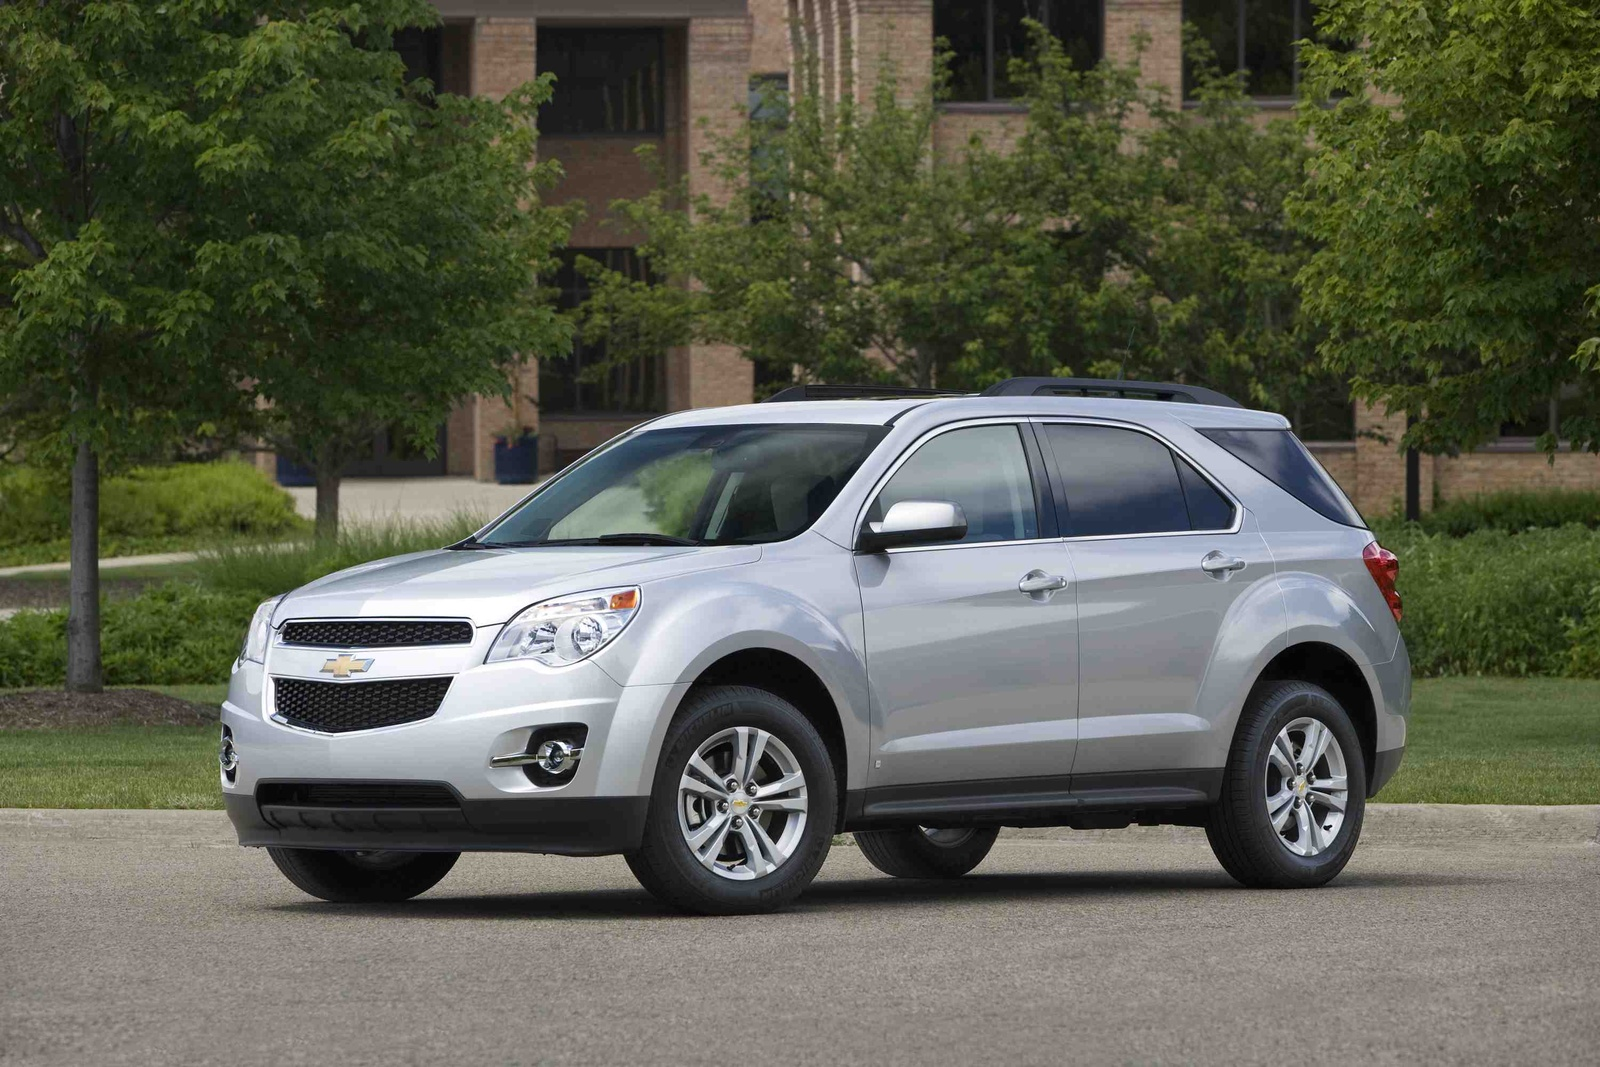 Chevrolet equinox 2010 photo - 2